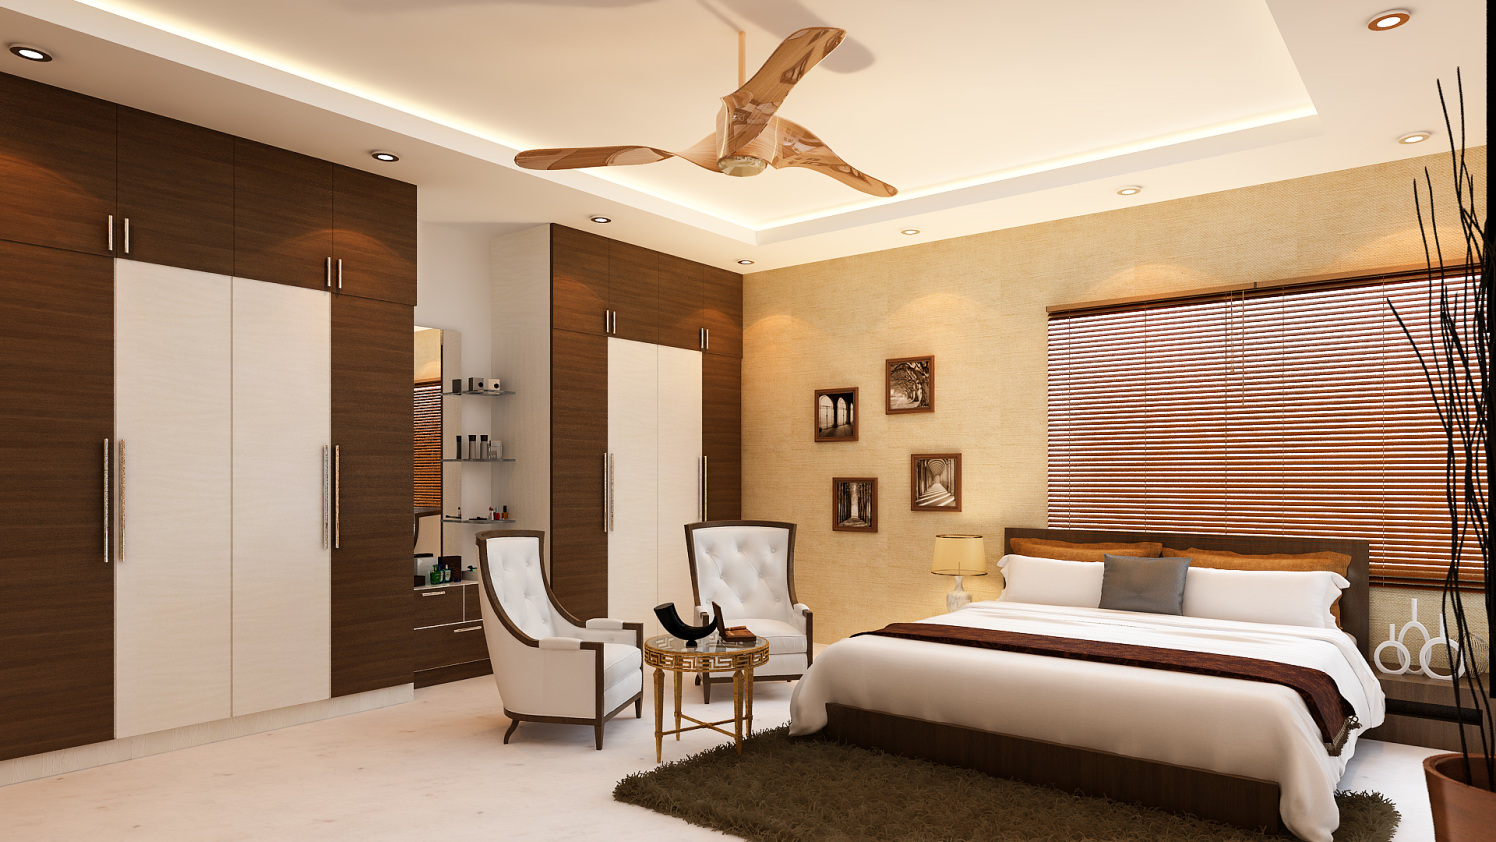 Bedroom with wardrobe lounge chair and false ceiling by Ram PJ Bedroom Modern | Interior Design Photos & Ideas